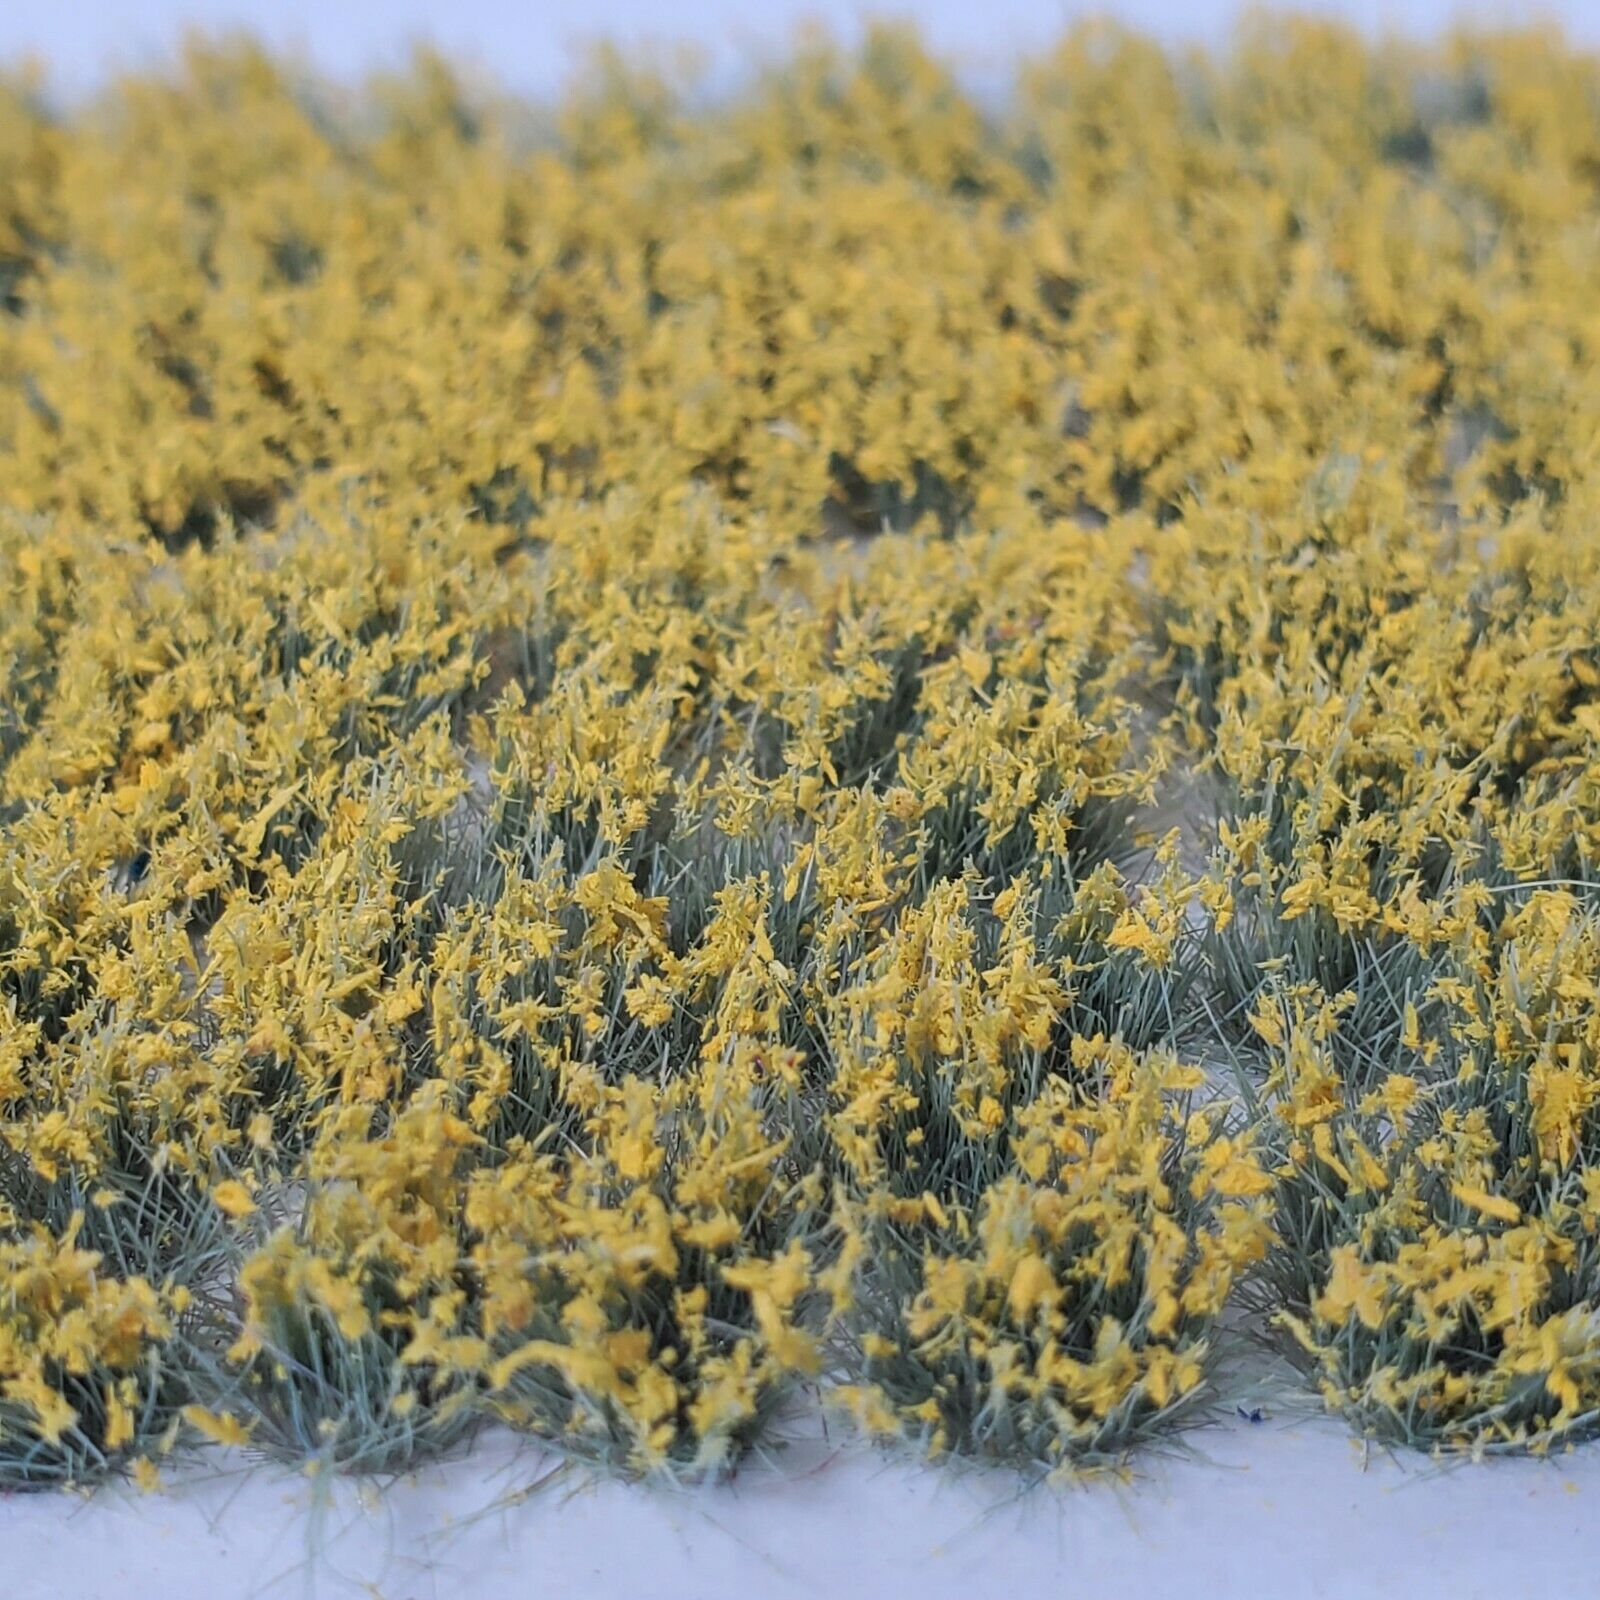 Self Adhesive Static Grass Tufts for Miniature Scenery -Yellow Wildflowers- 6mm